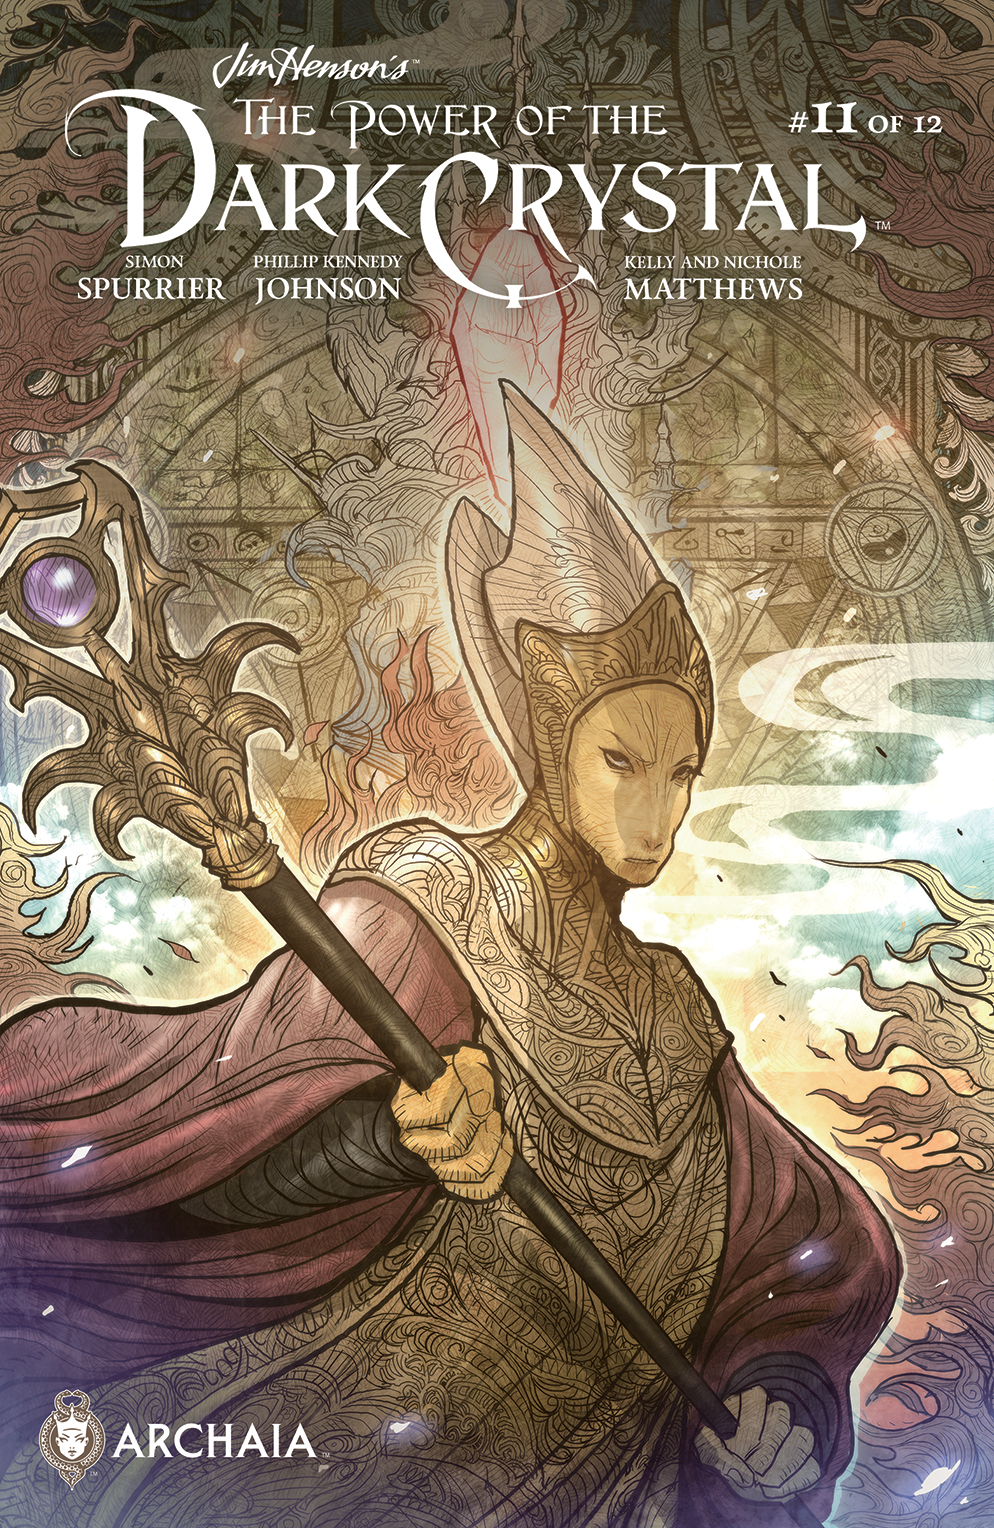 The Power of the Dark Crystal #11 Review